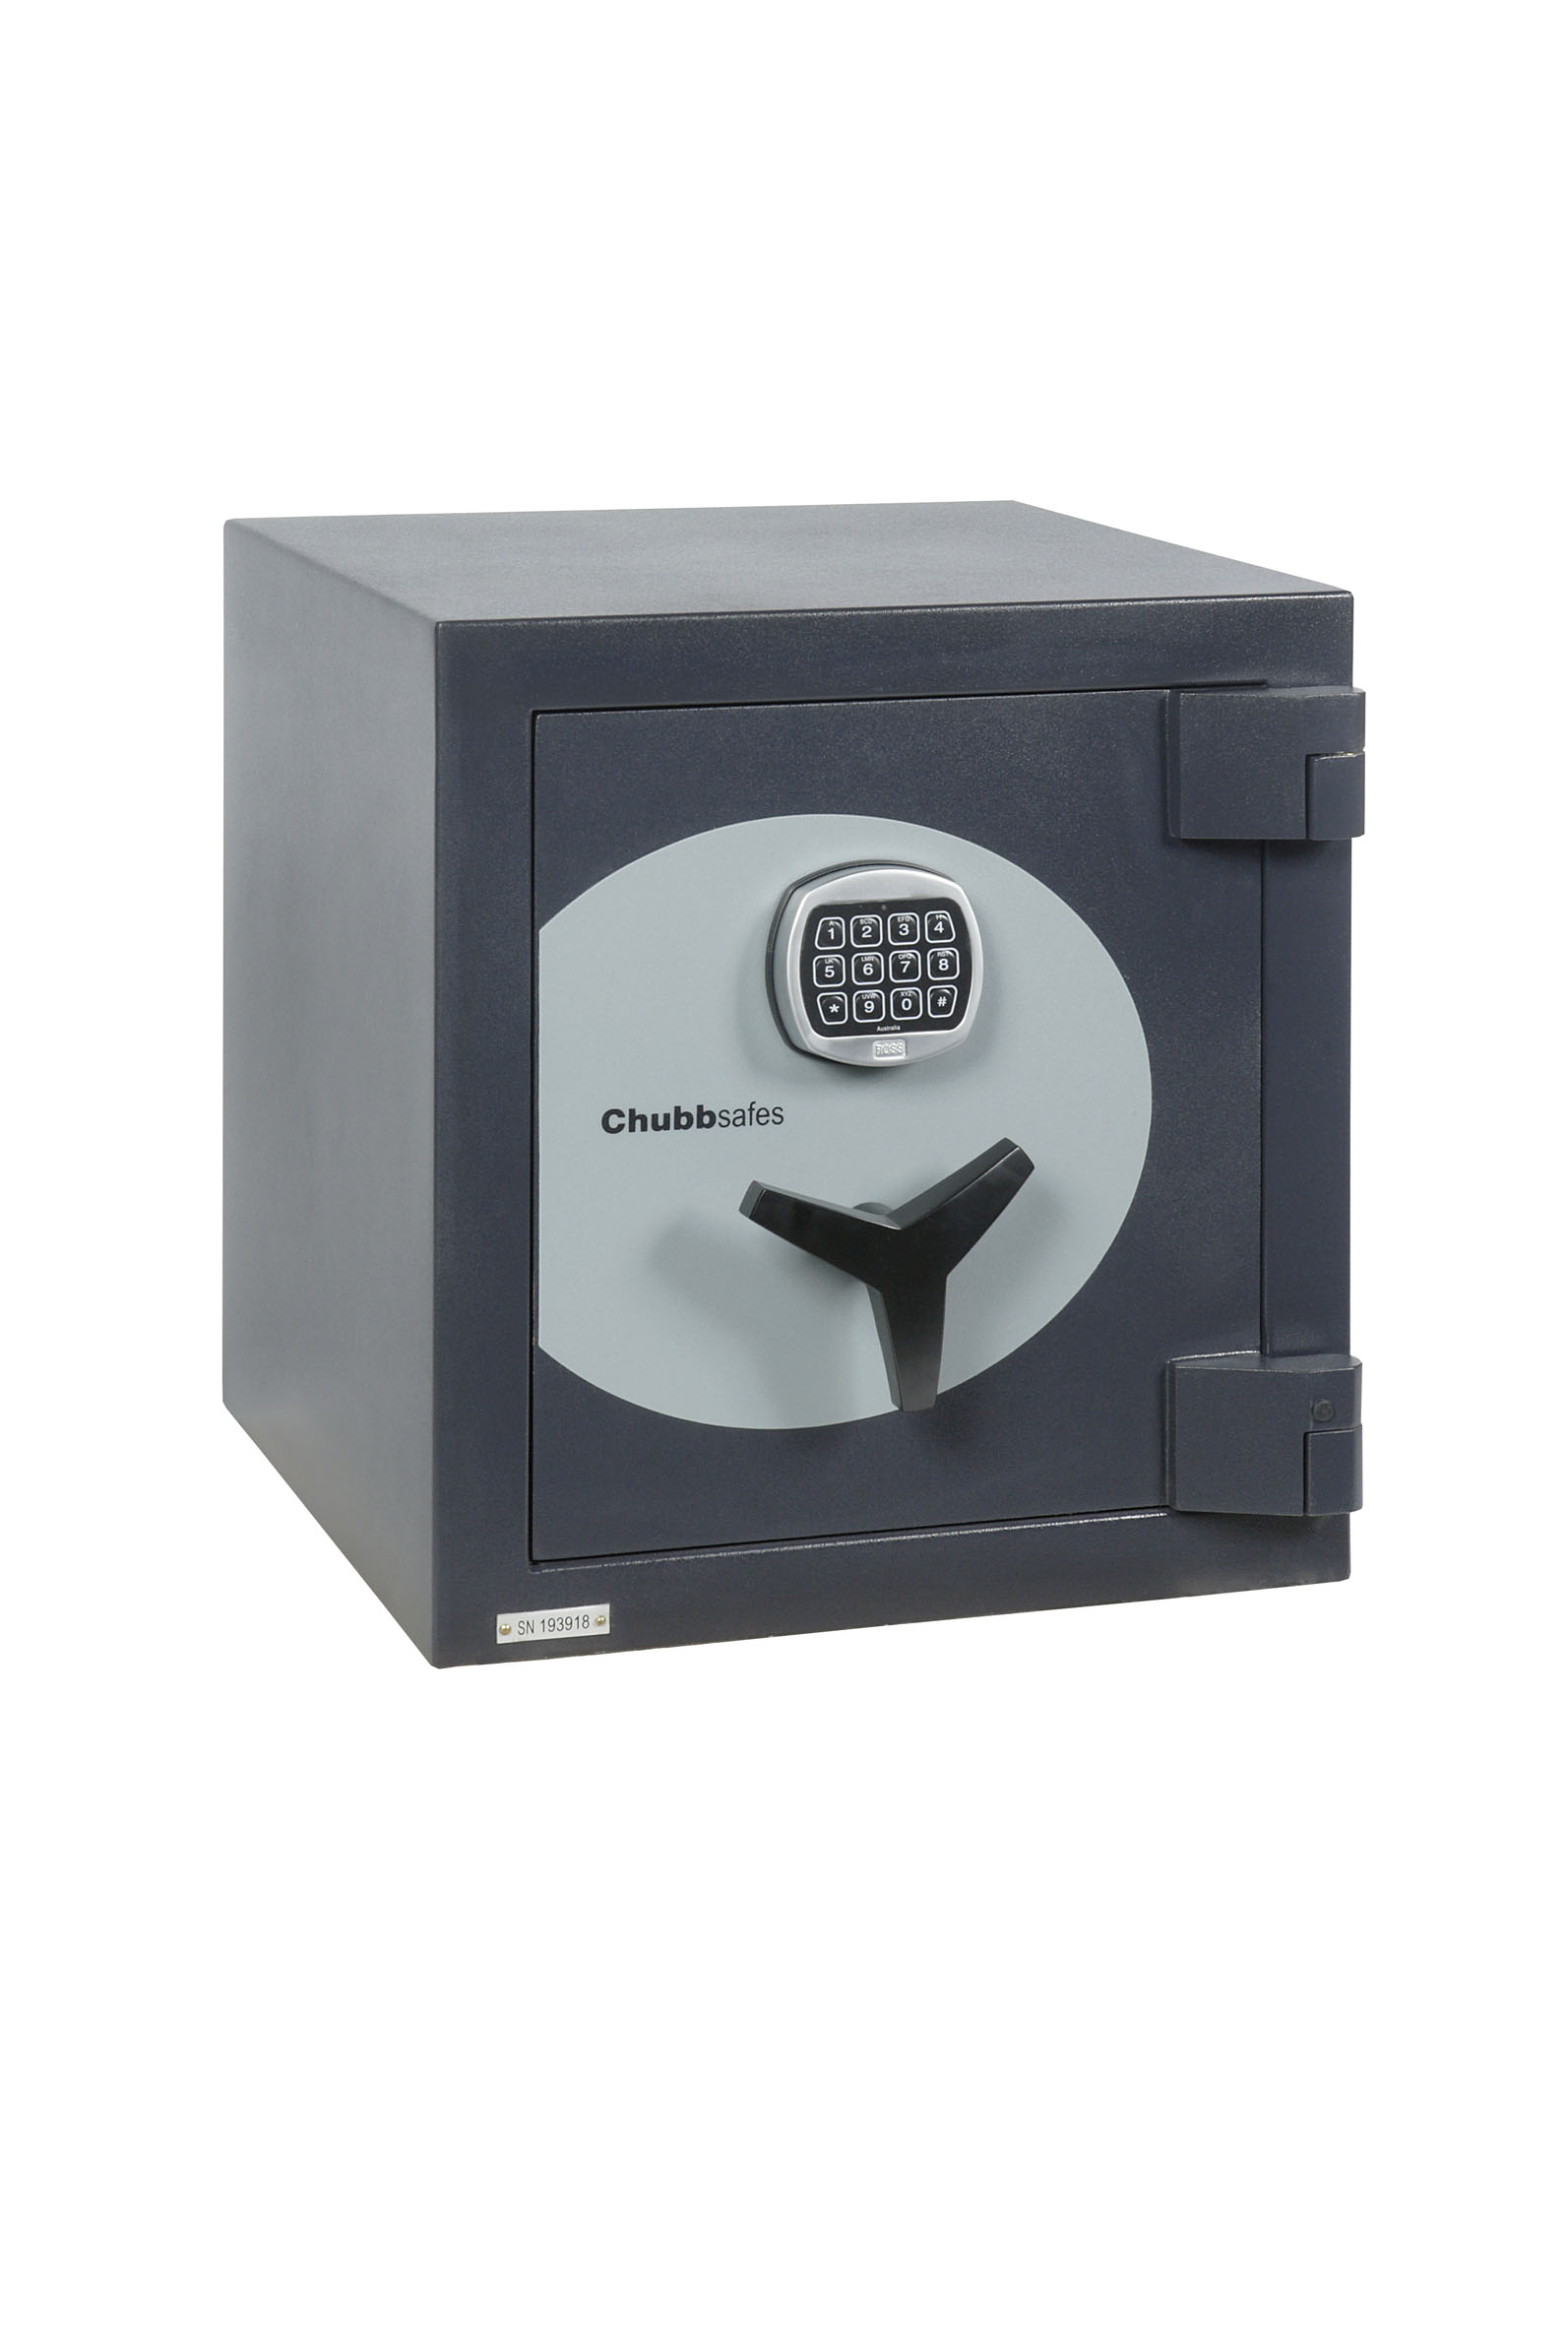 Omni Size 2 Safe by Chubb safes